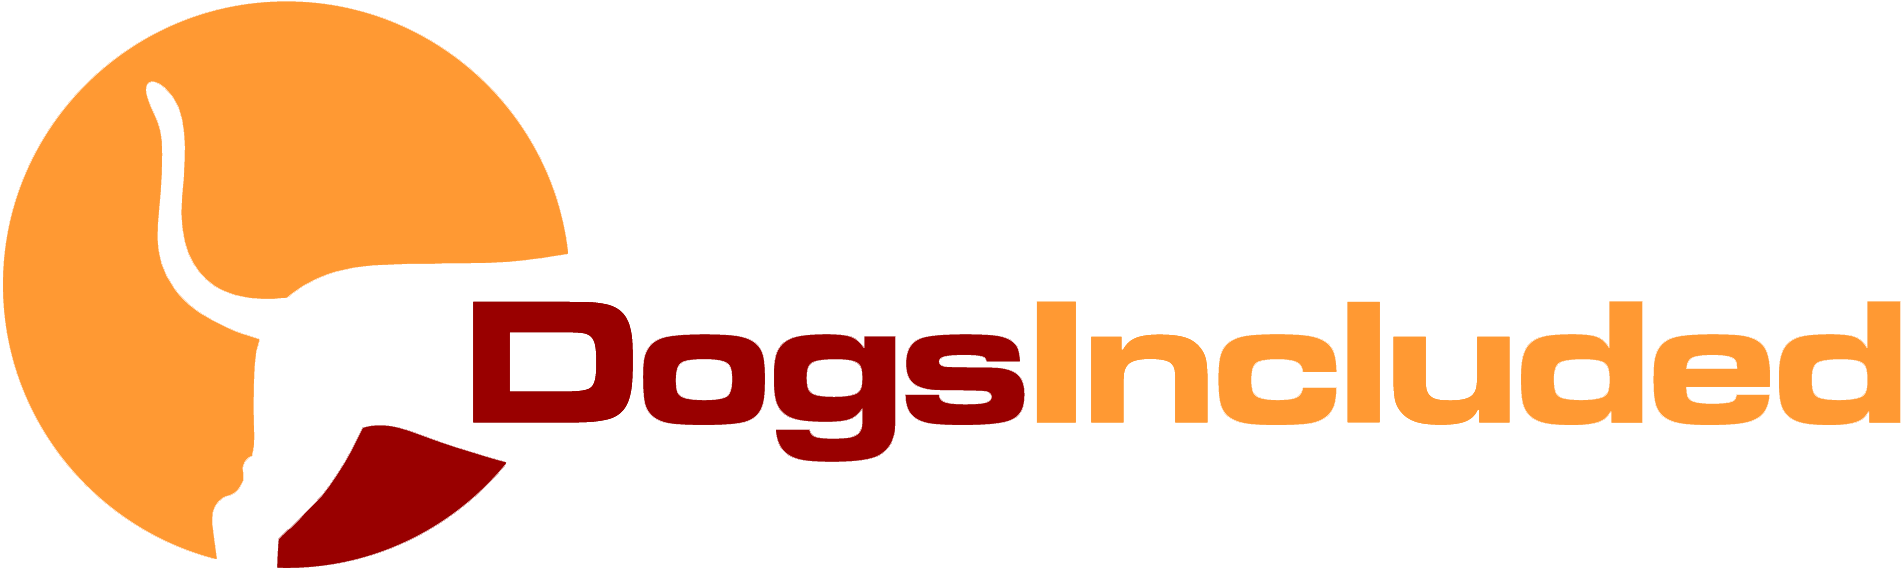 logo_dogsincluded